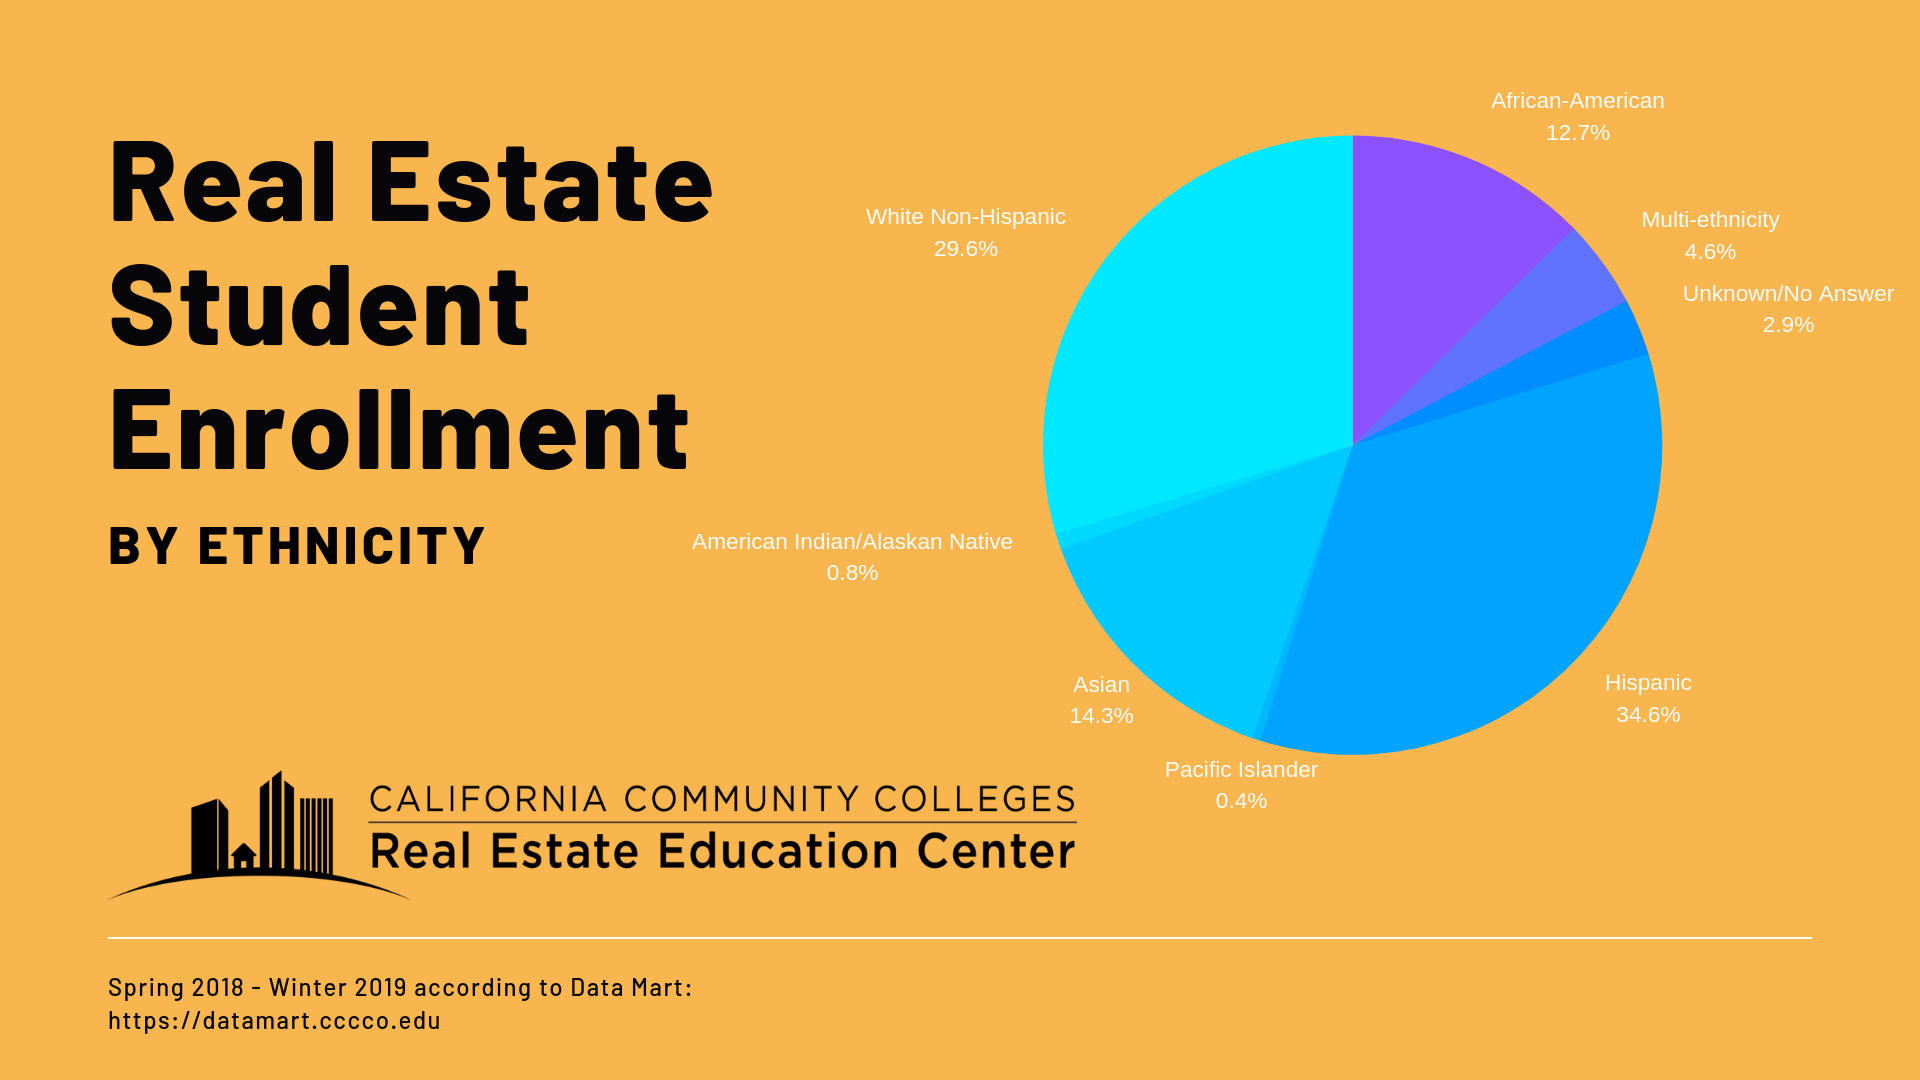 California Community Colleges real estate students for Spring 2018-Winter 2019 are 35% Hispanic, 30% White Non-Hispanic, 14% Asian, 13% African-American, 5% Multi-ethnic, 2% Other/unknown, and less than 1% Pacific Islander, American Indian & Alaskan Native